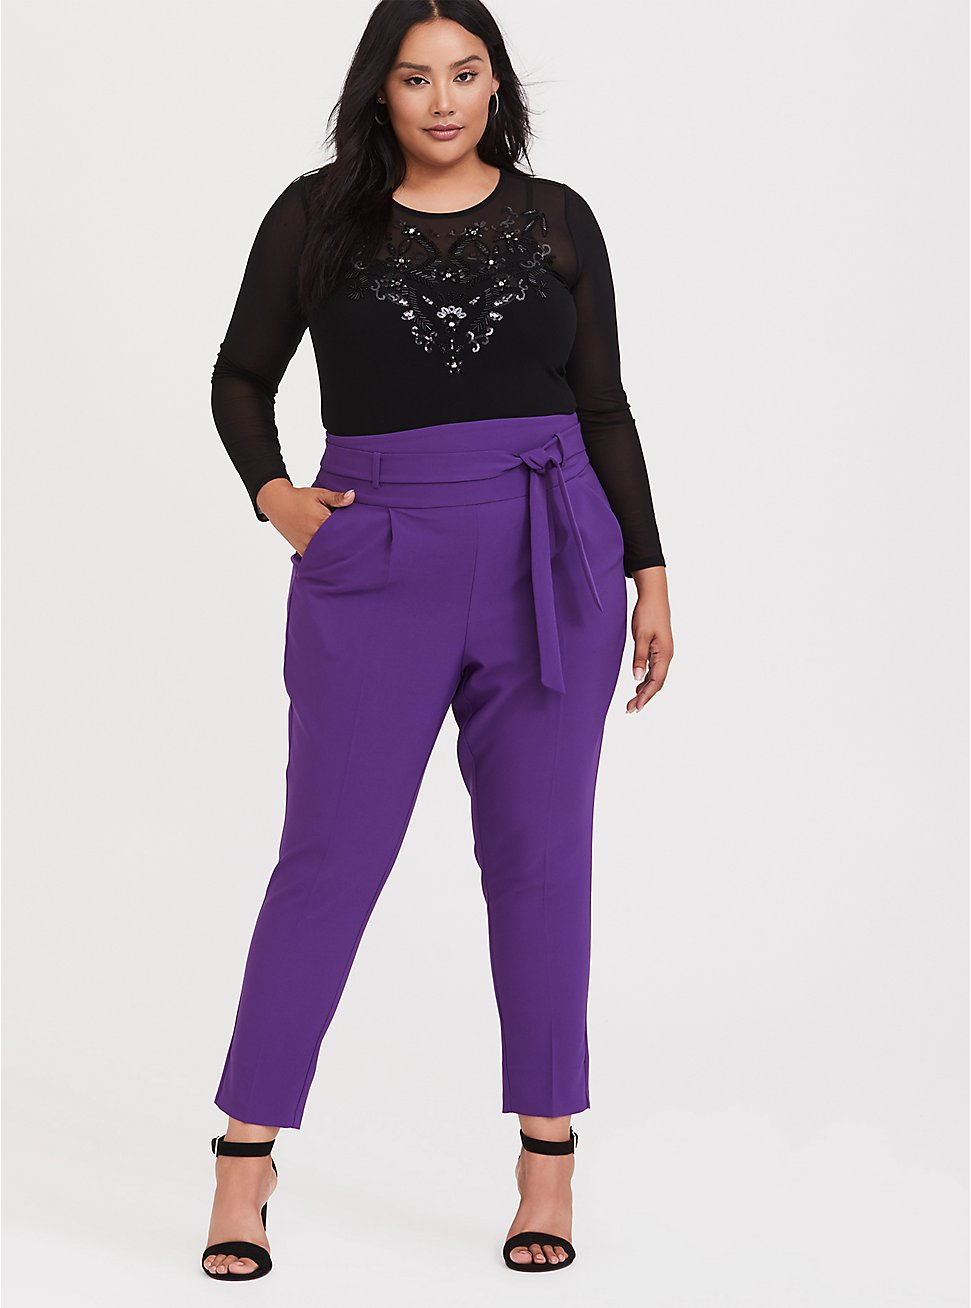 Plus Size High Waisted Tie-Front Skinny Pant - Purple, BRIGHT GRAPE, hi-res